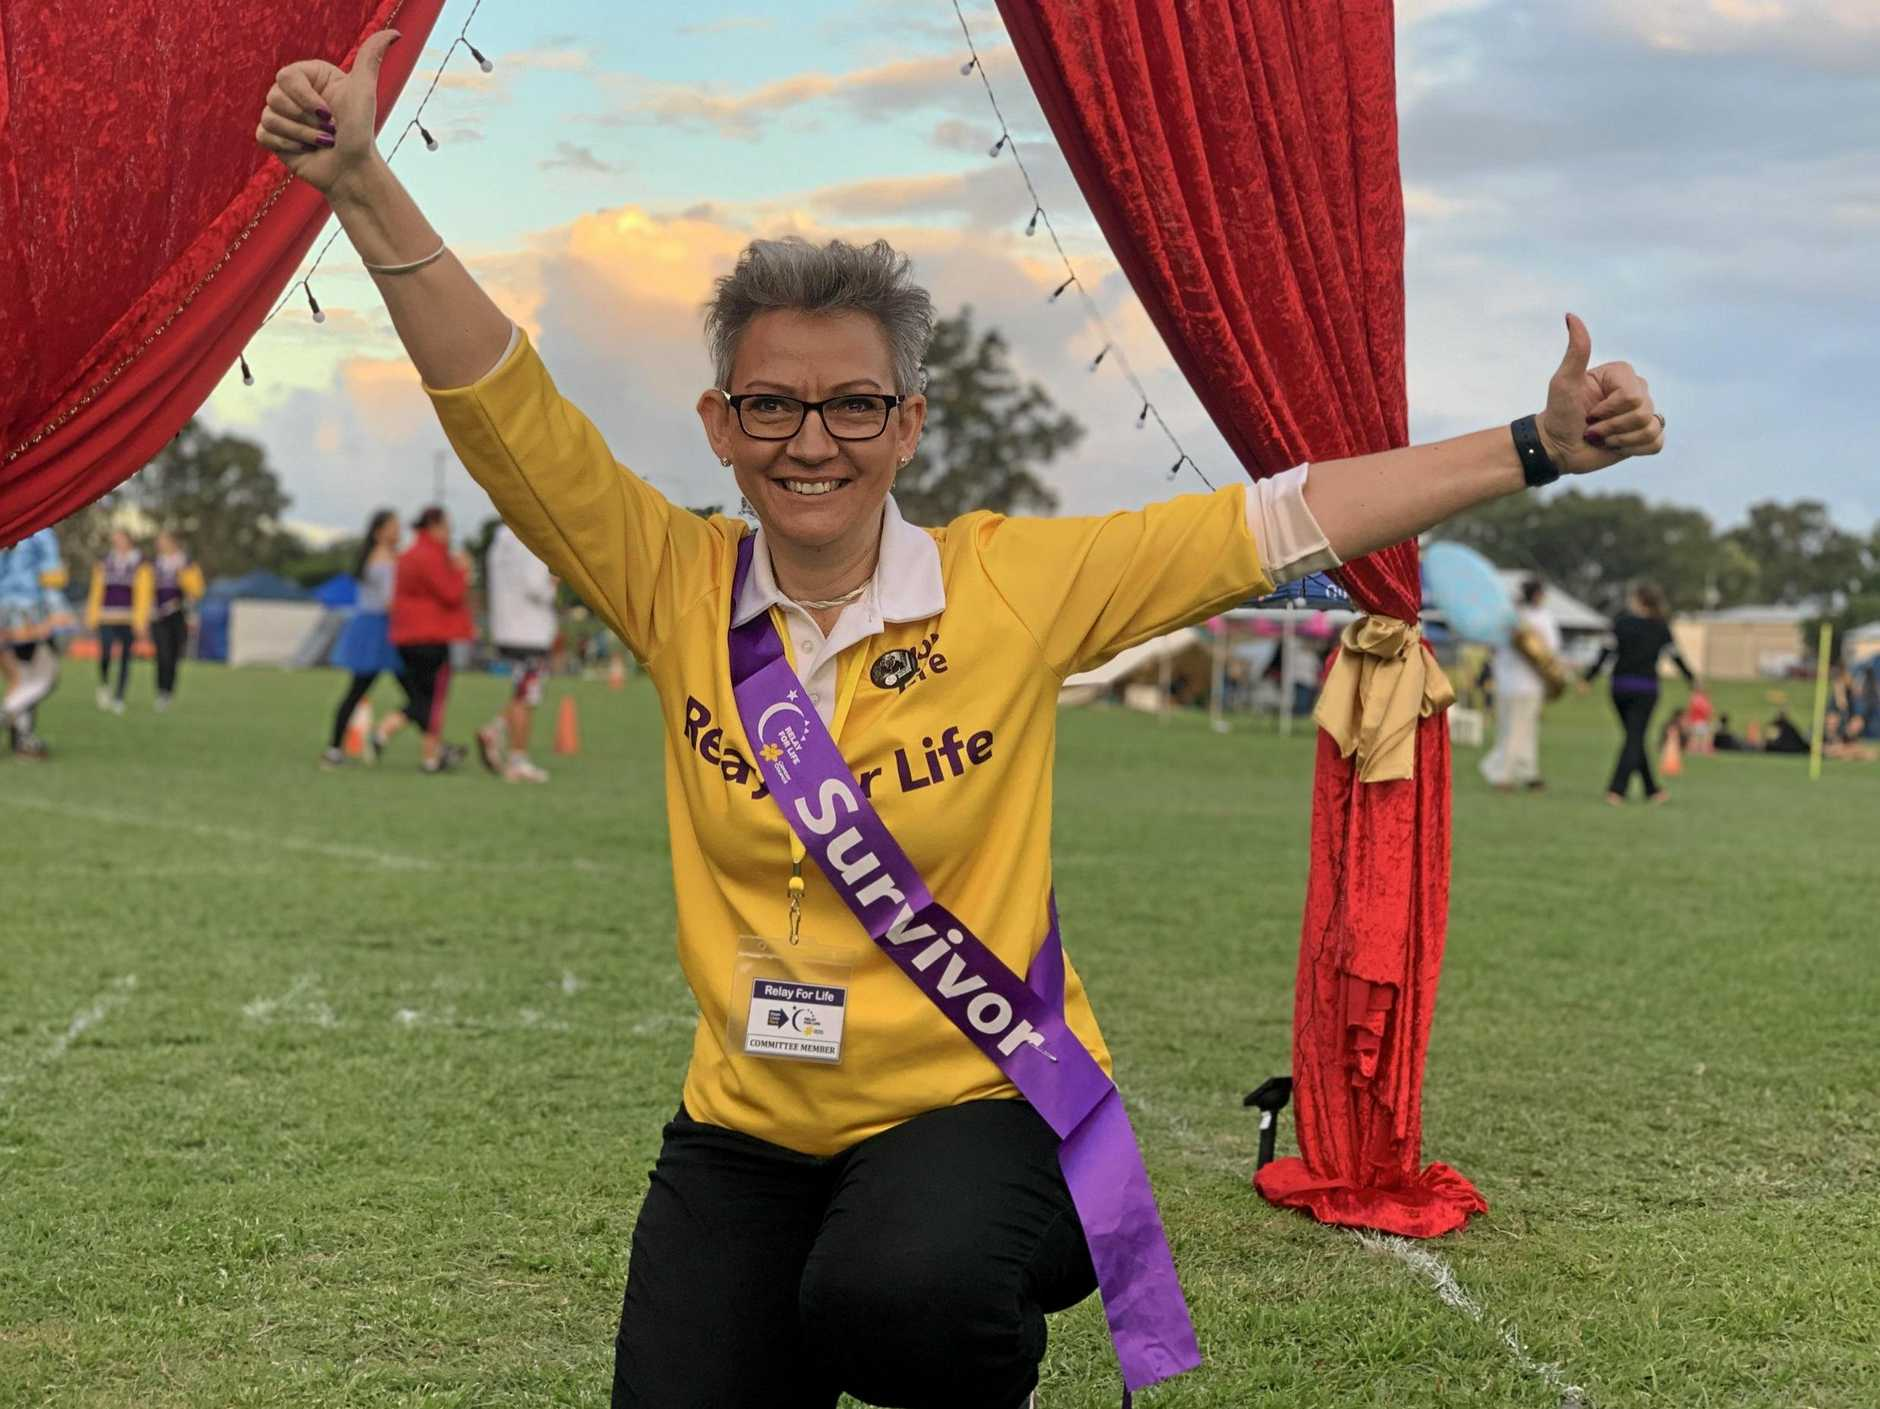 SURVIVOR: Annelize Van Niekerk fought breast cancer and is now helping others through their journeys with cancer at Relay for Life event across the region.